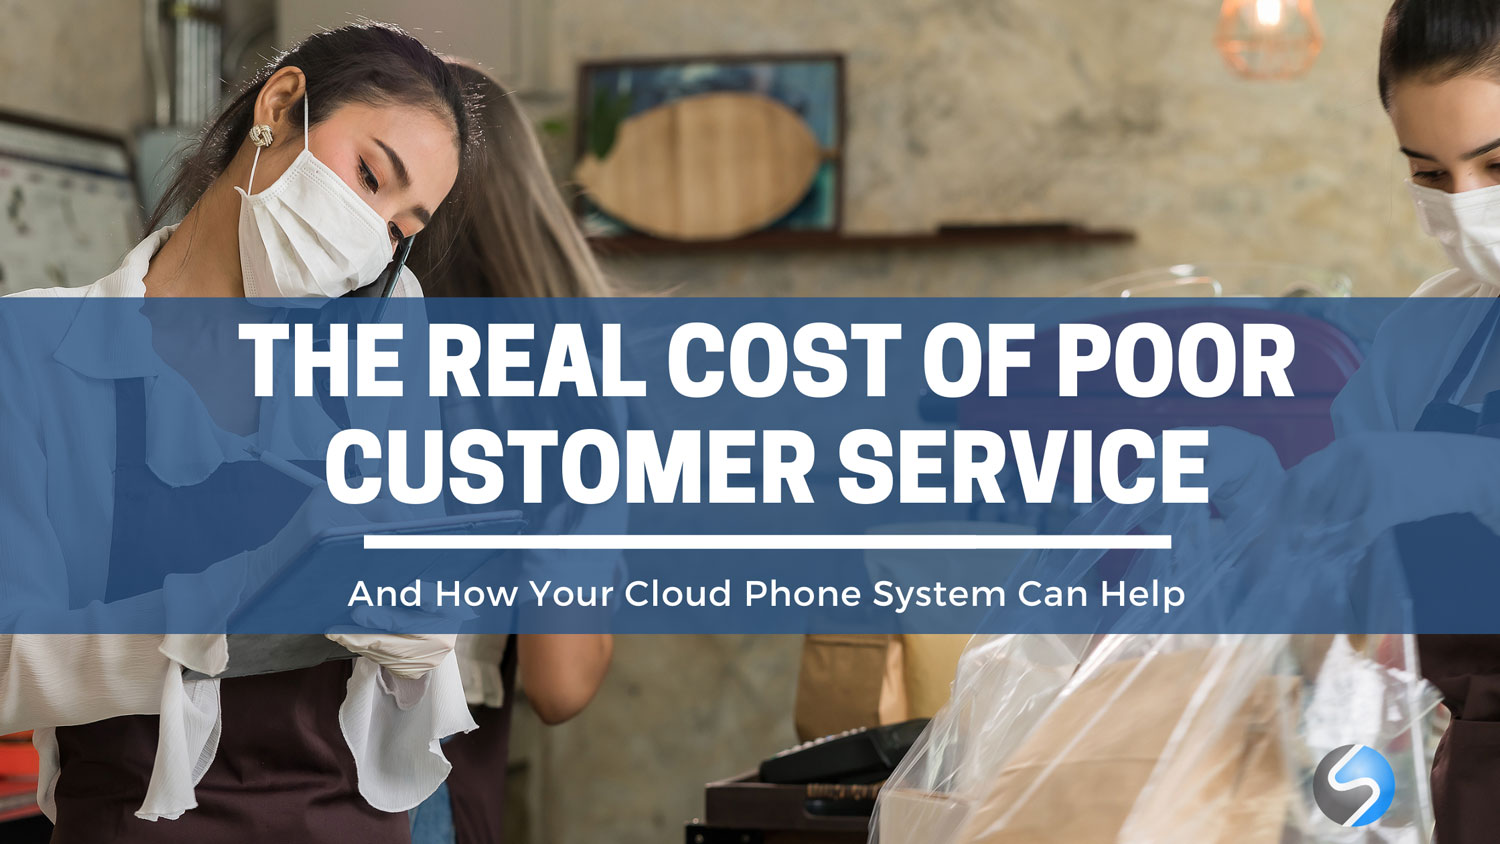 The real cost of poor customer service